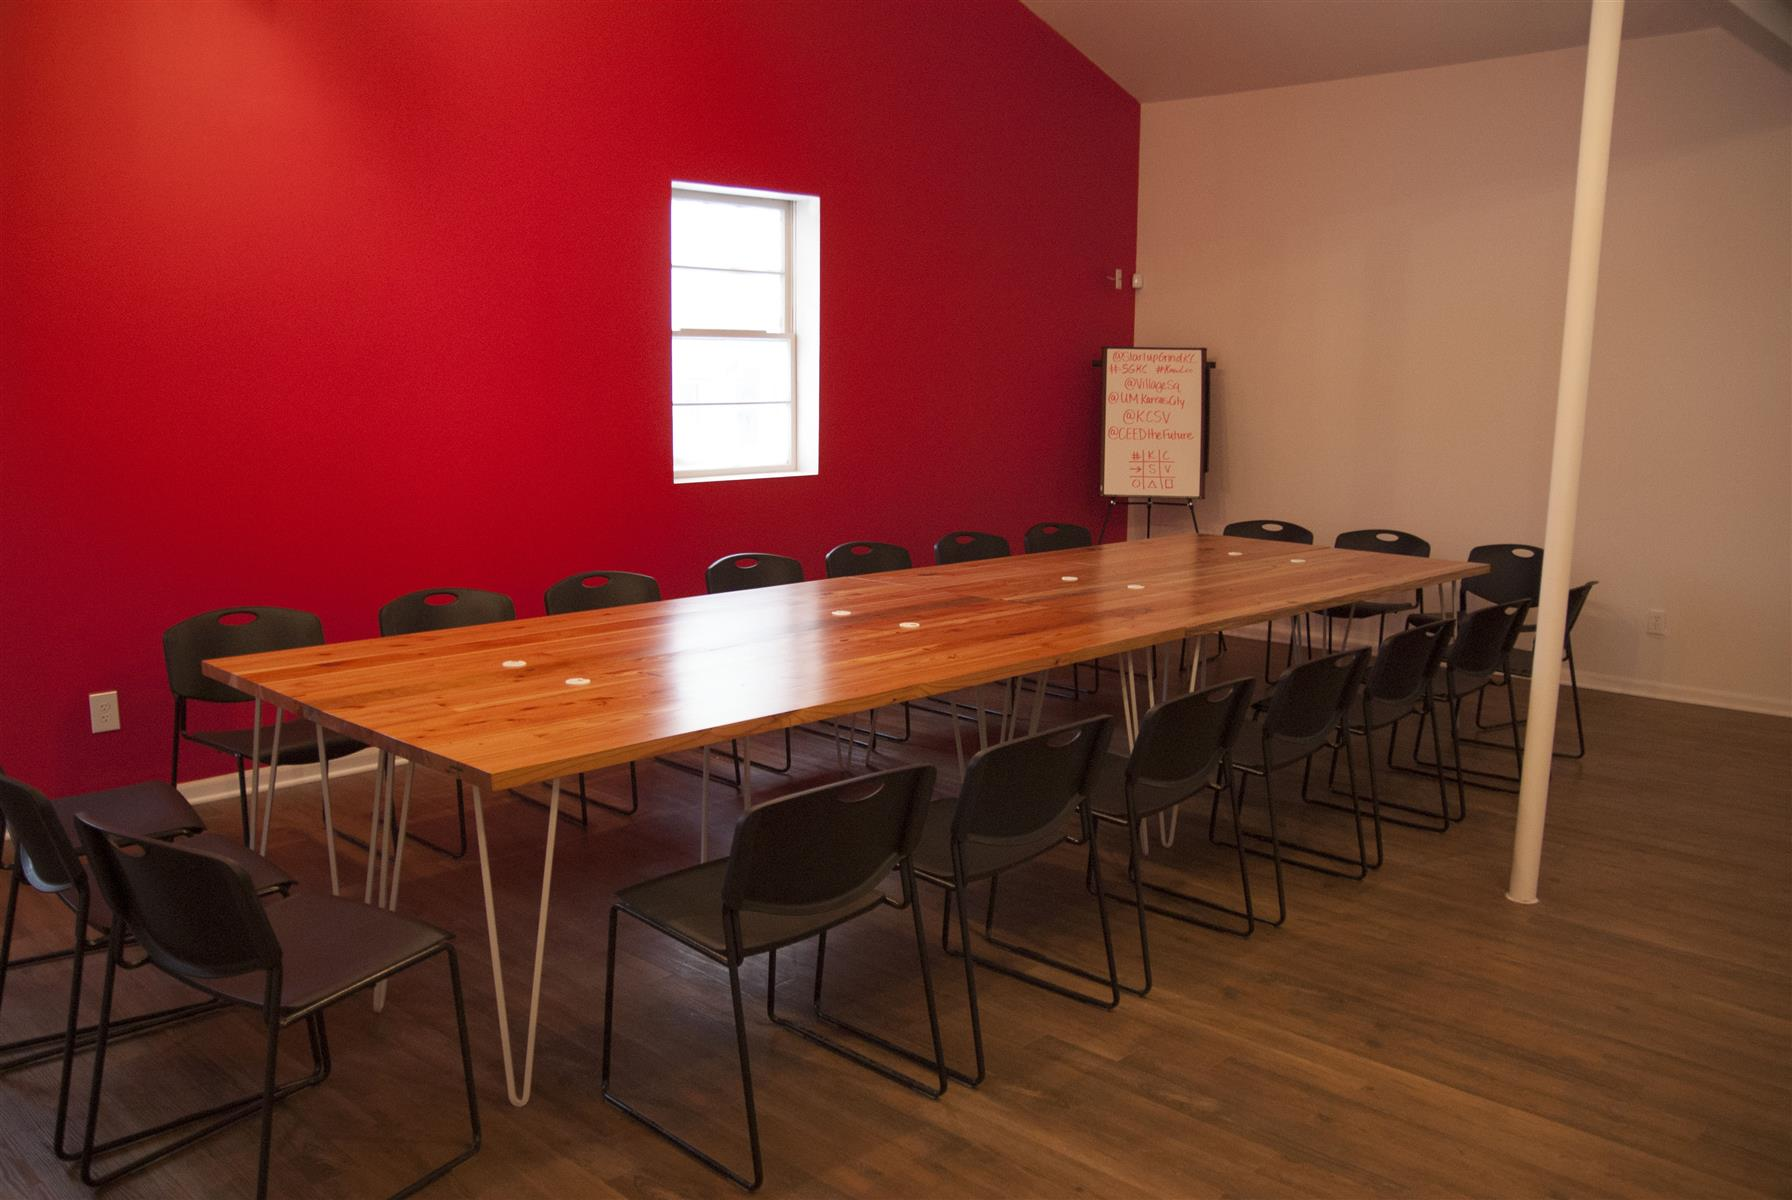 Village Square Coworking Studio - Large Meeting Room/Event Space